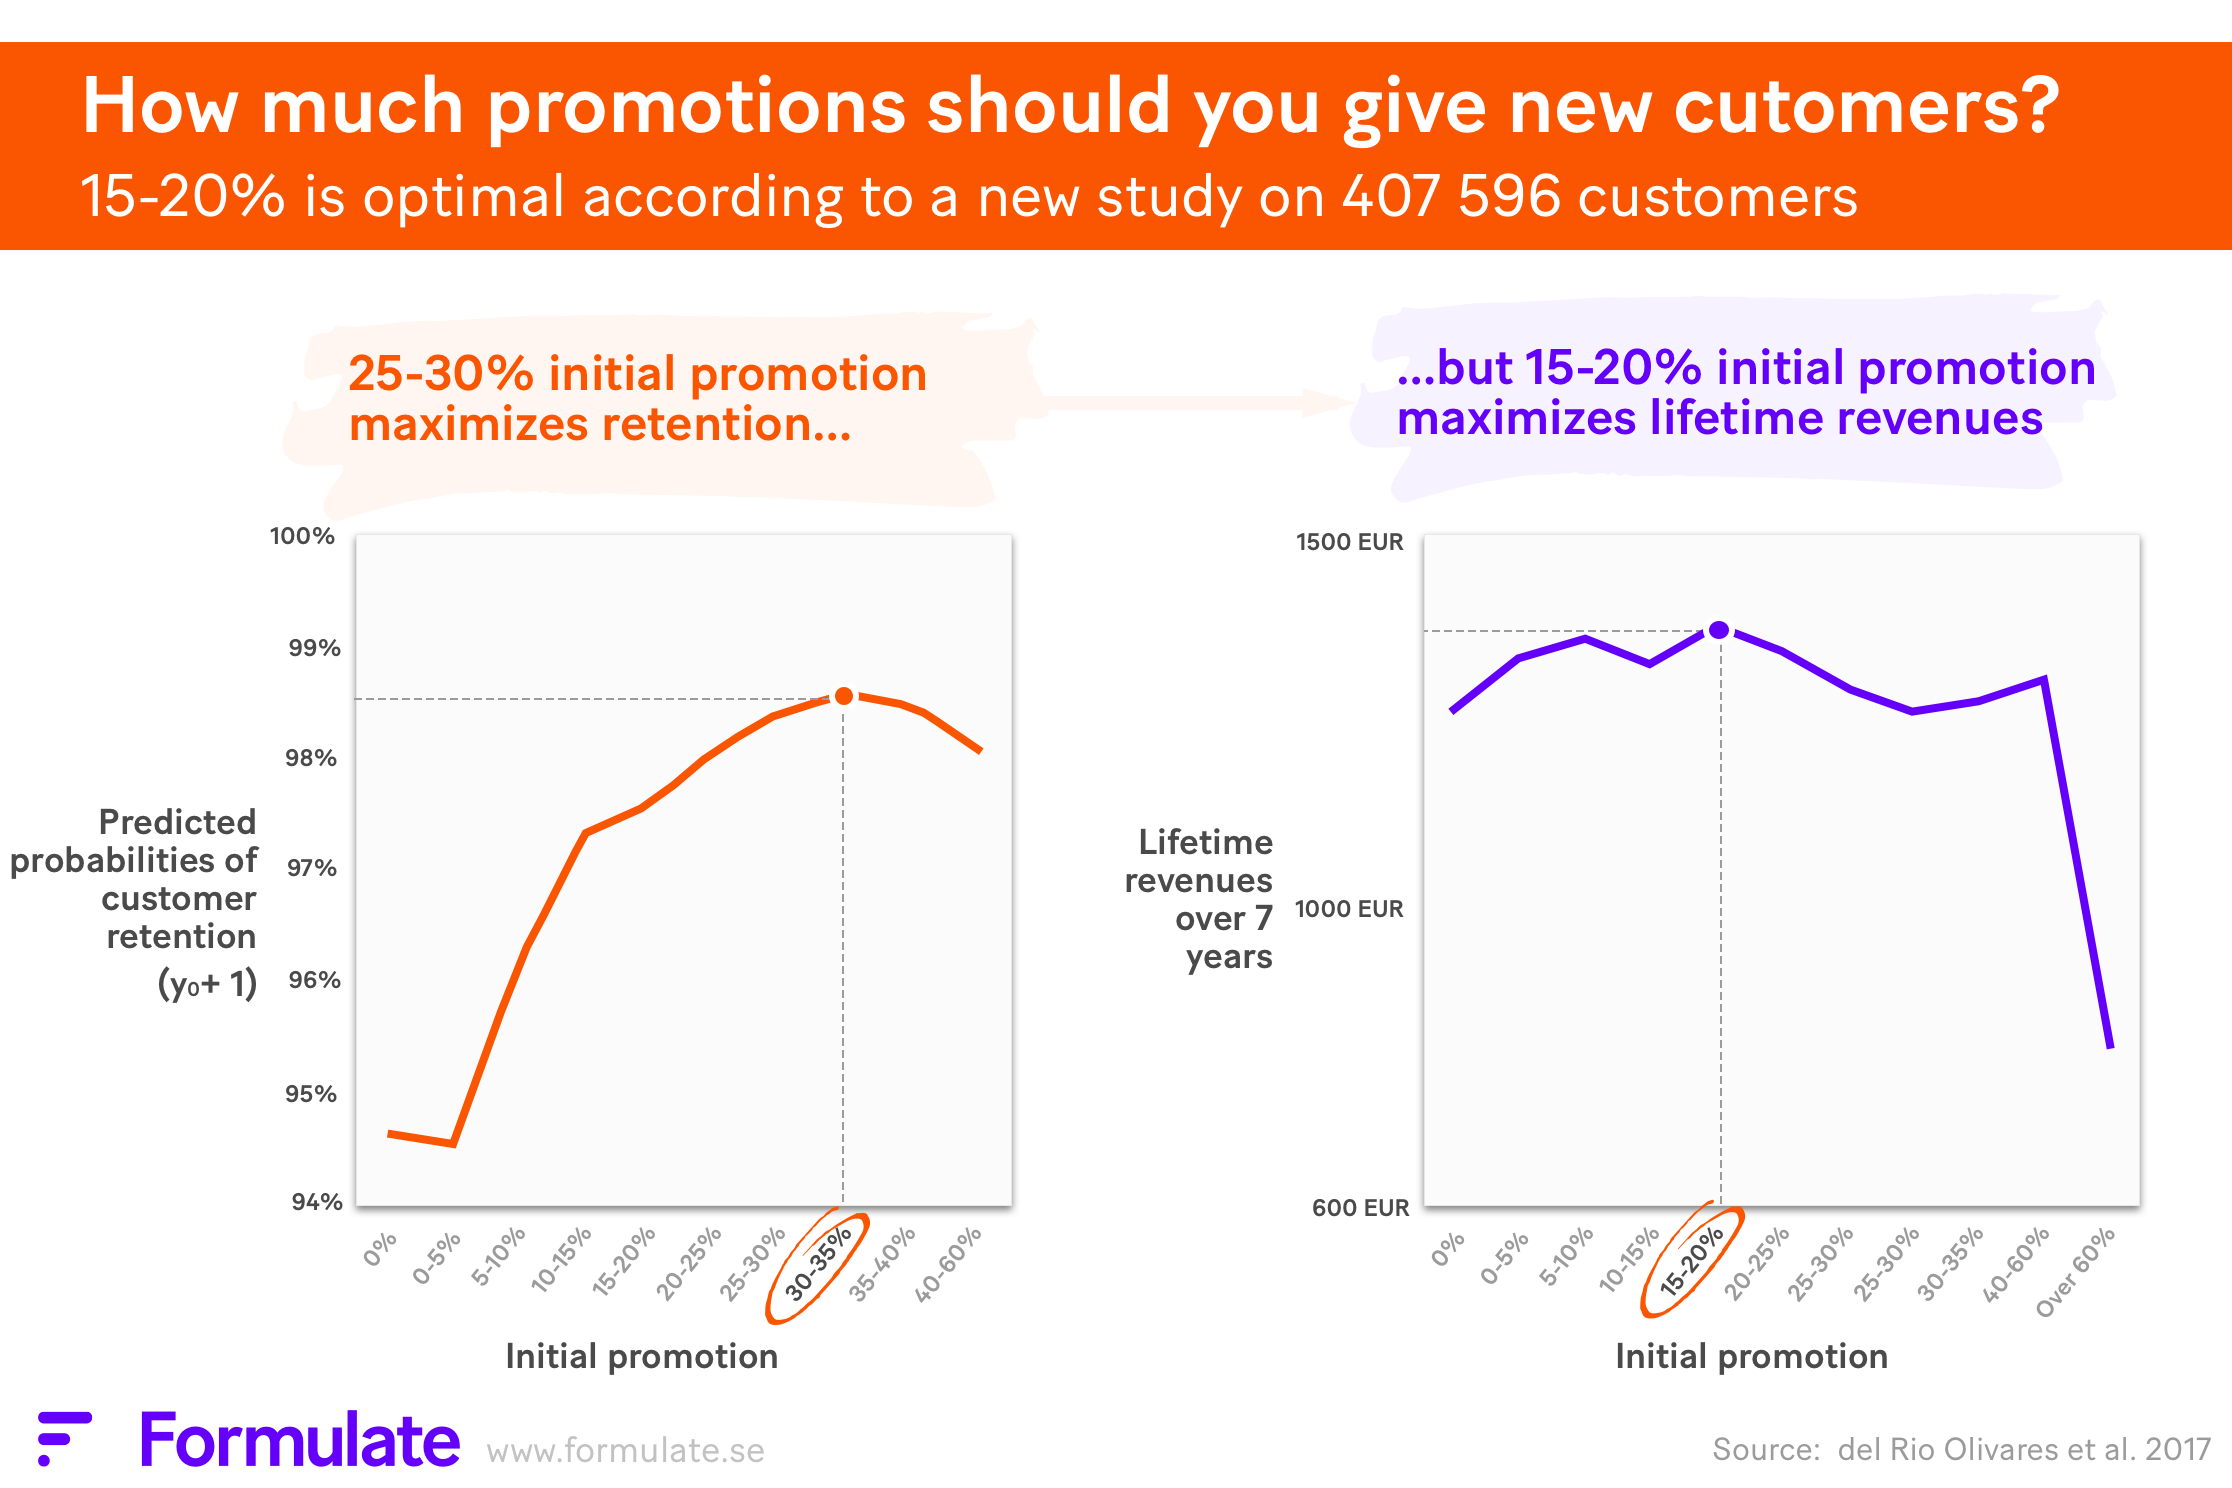 15-20% initial promotion optimizes lifetime revenues.png